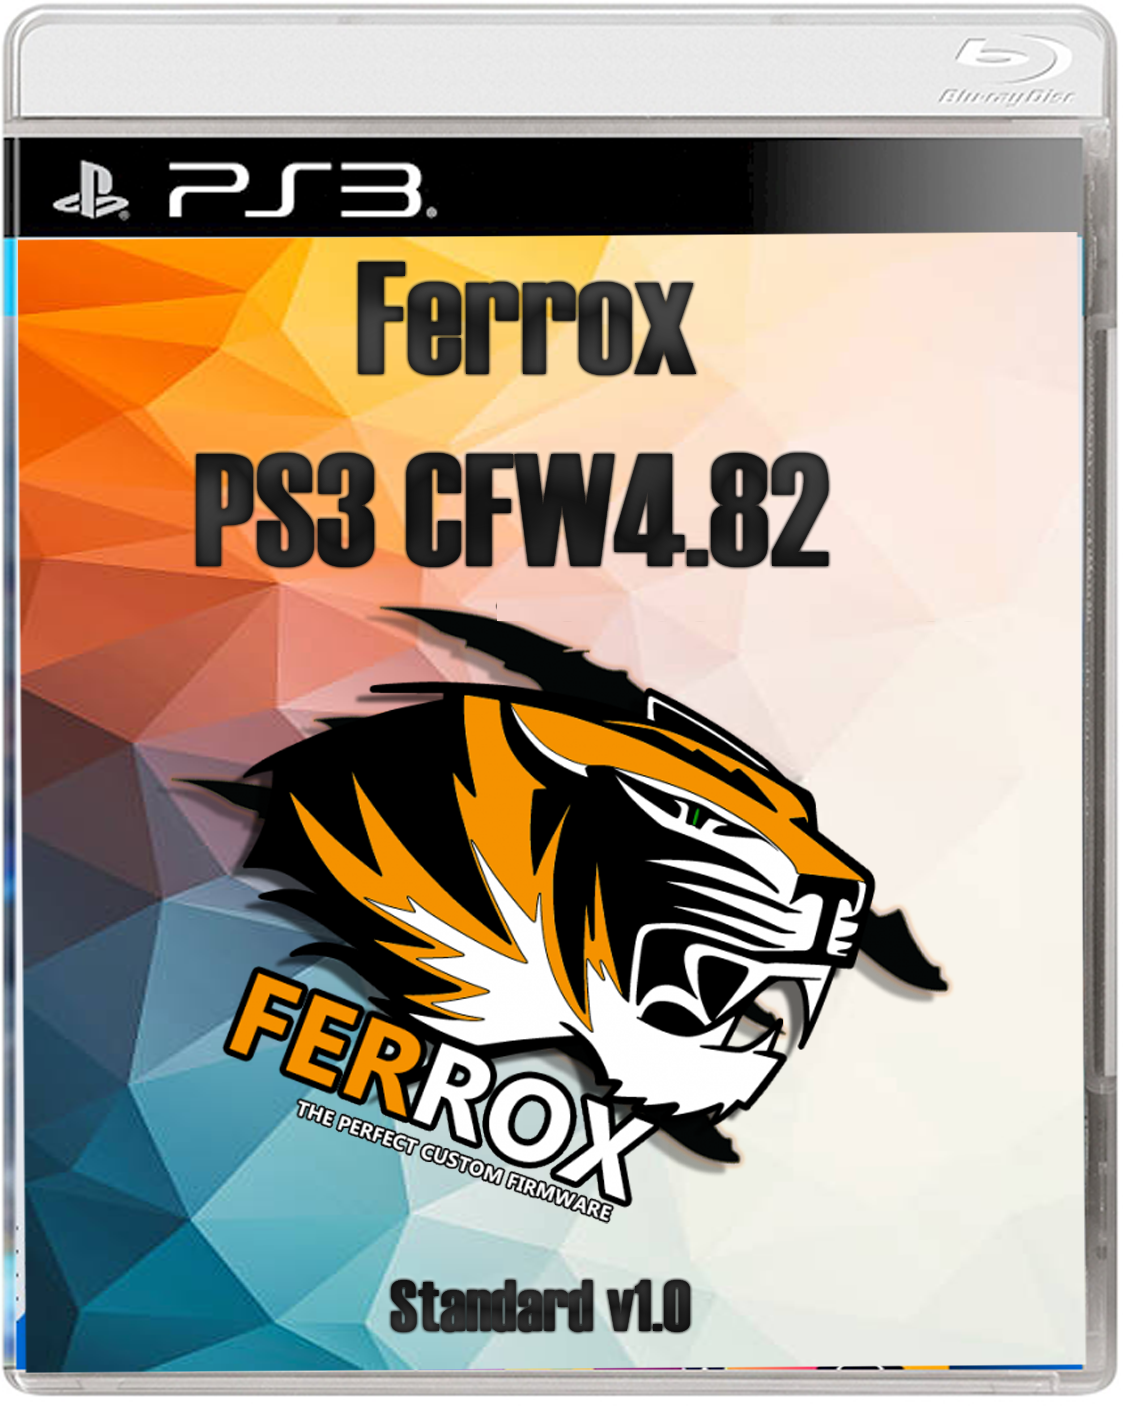 ps3 3.55 ofw download link